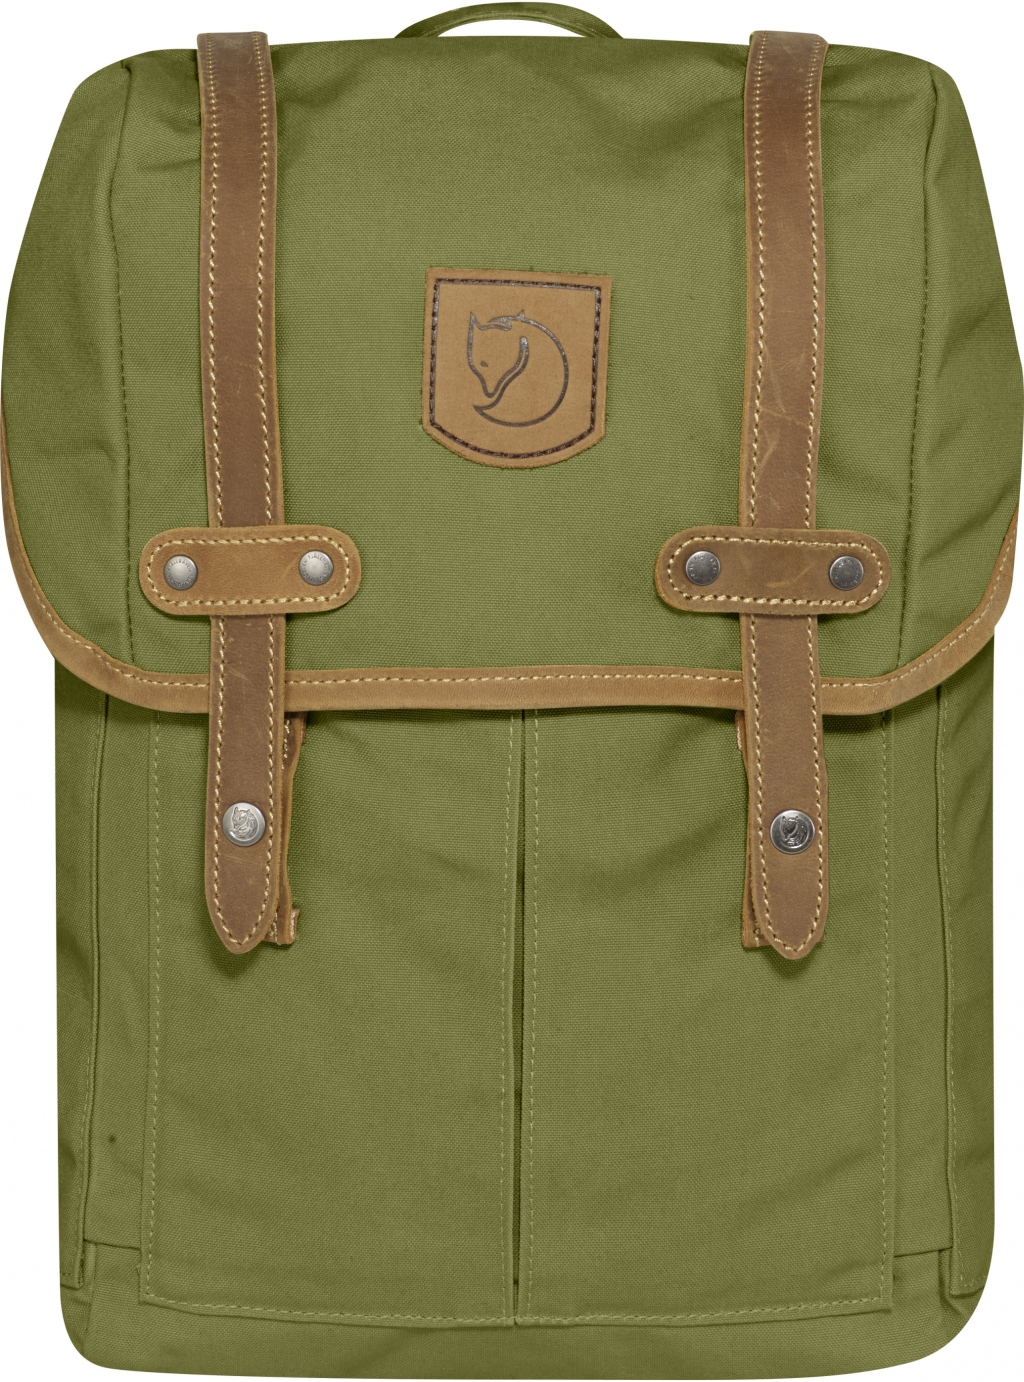 FjallRaven Rucksack No.21 Mini Meadow Green-30